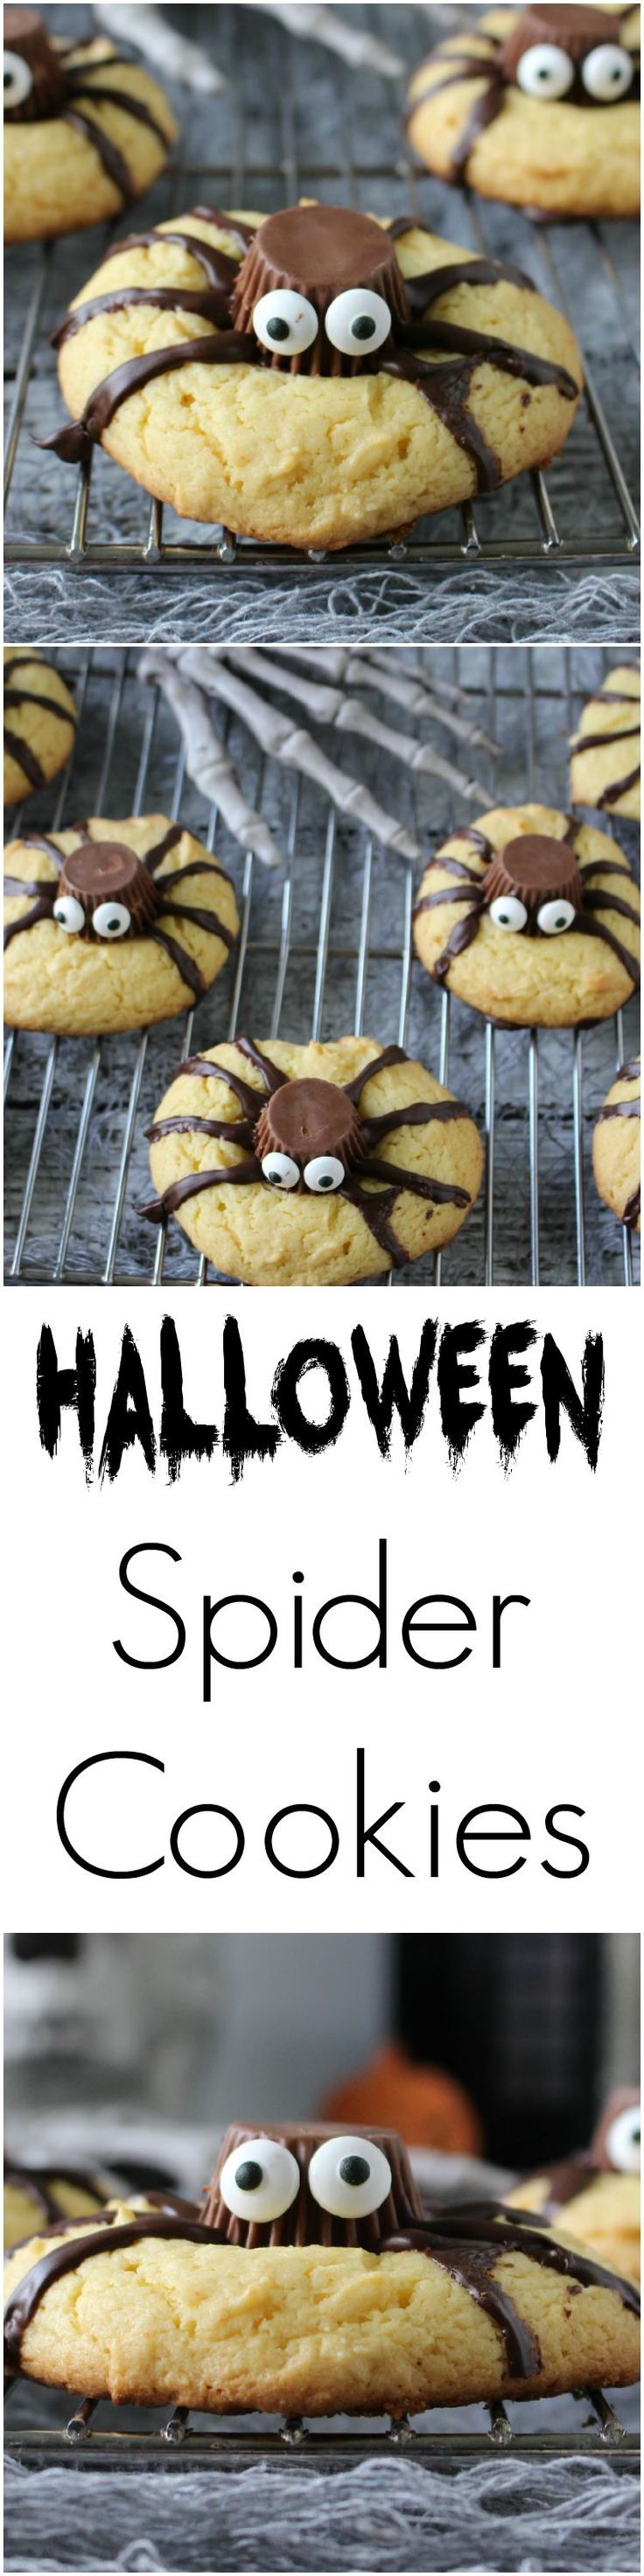 winter clothing sales Easy Halloween Spider Cookies   a super easy treat for Halloween